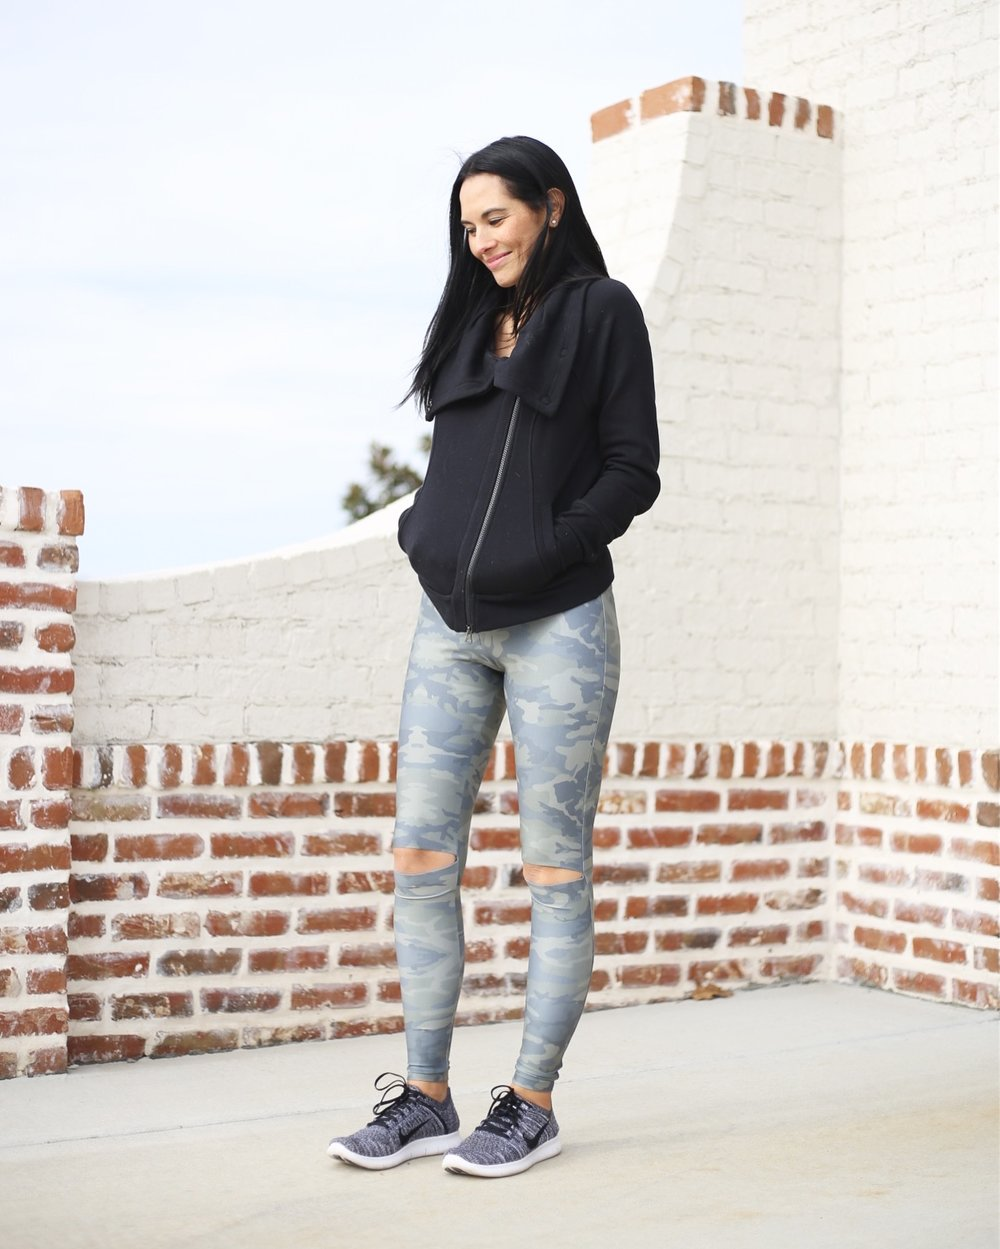 Nike sneakers | leggings | jumper similar | photo: Sydney Clawson